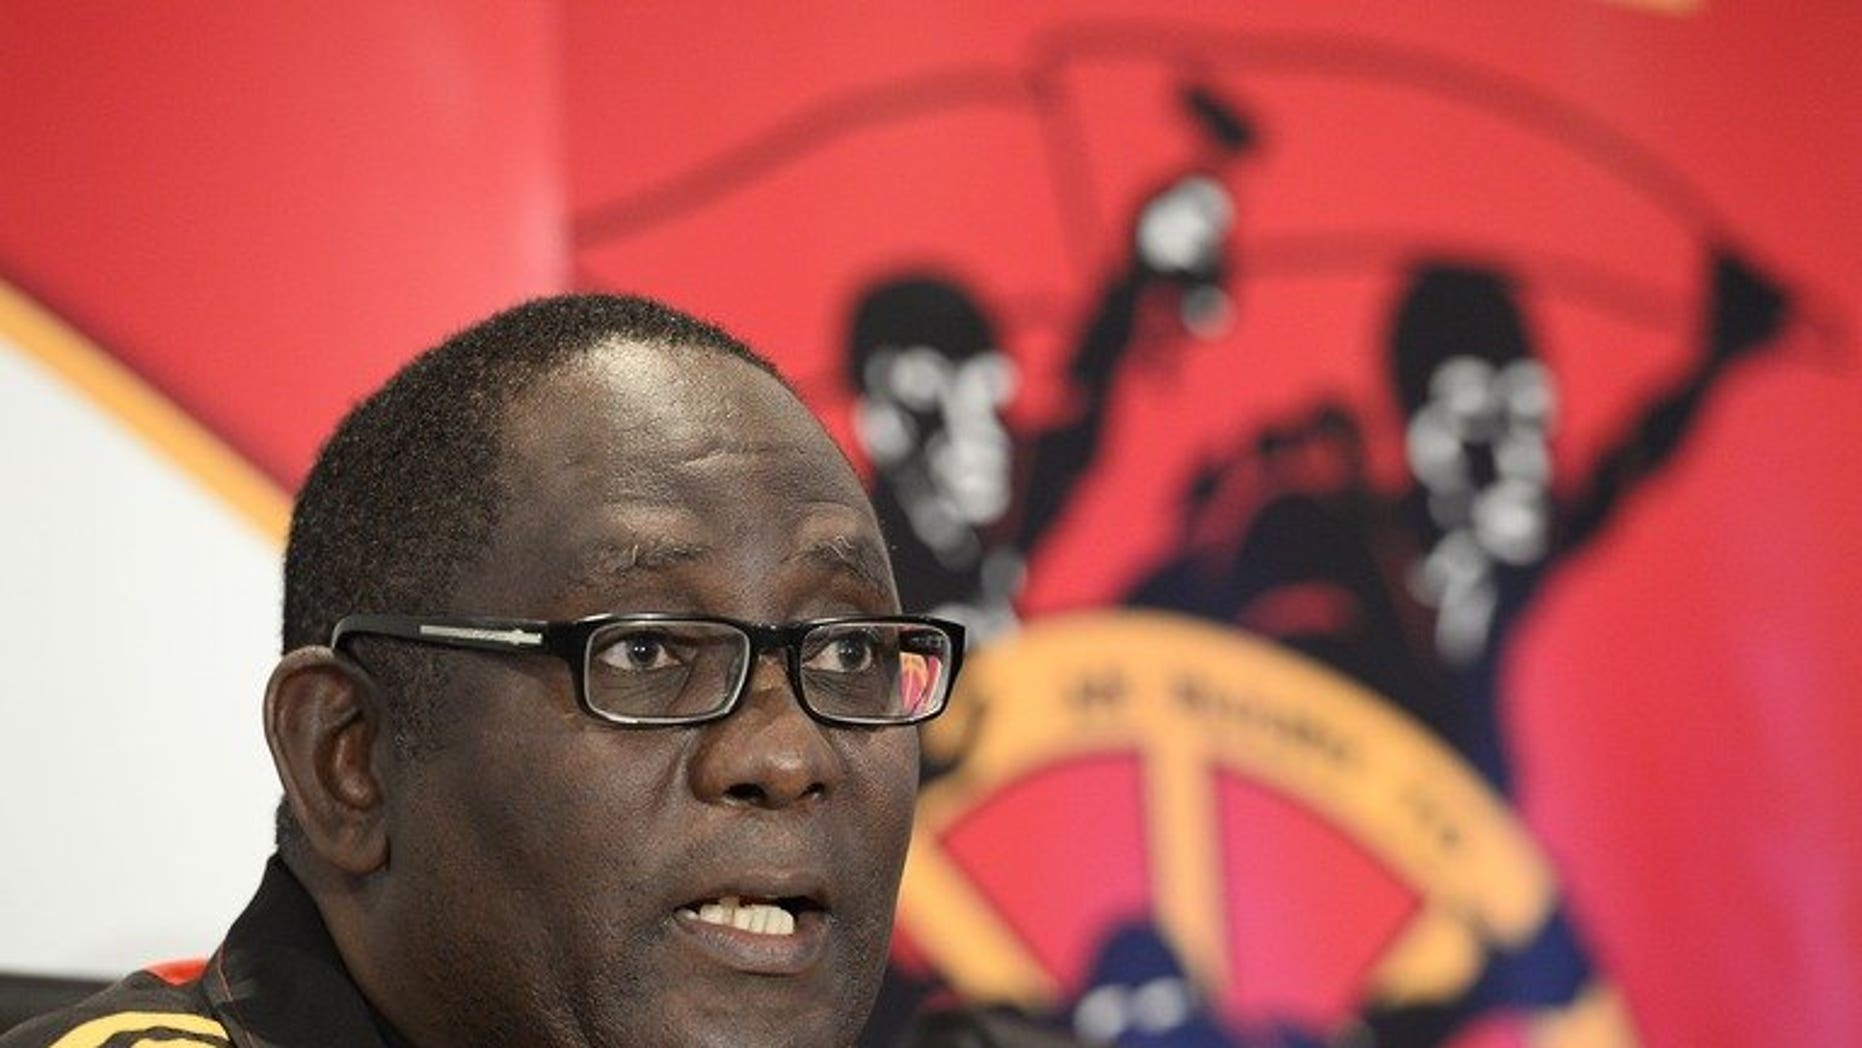 The general secretary of the Congress of South African Trade Unions, Zwelinzima Vavi, gives a press conference on May 29, 2013 at COSATU headquarters in Johannesburg. An employee has accused him of rape, but the politician shot down the allegation as a plot on Saturday.